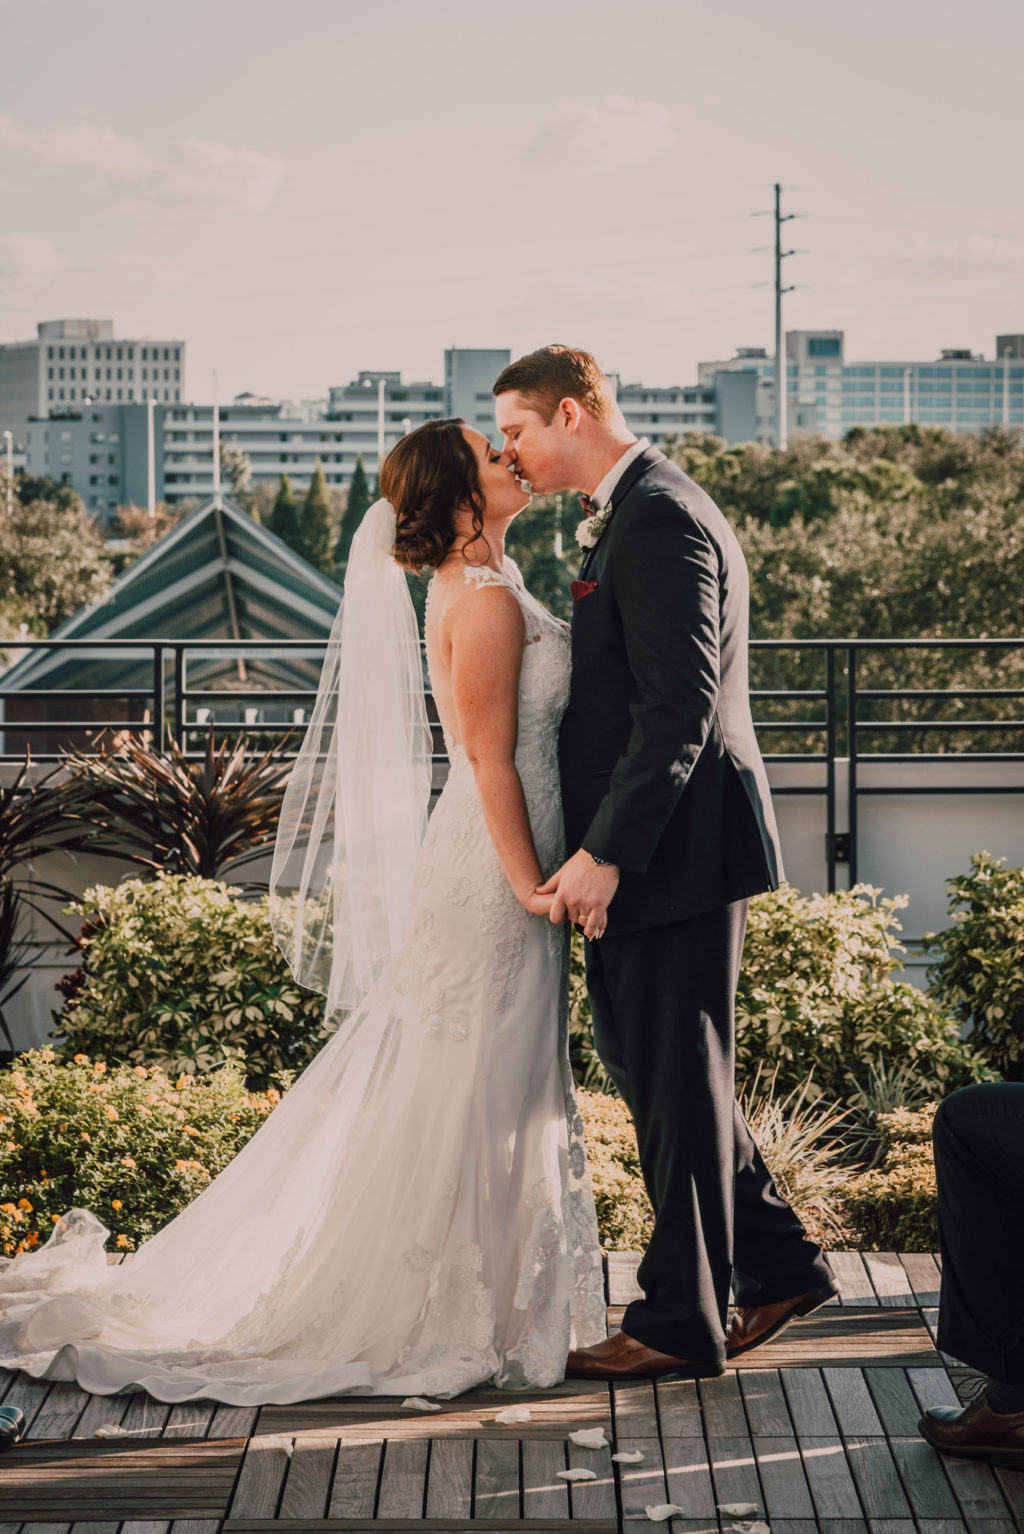 Bride and Groom First Kiss Portrait at Tampa Heights Rooftop Wedding Ceremony | Lace Sheath V Neck Illusion Sleeve Bridal Gown Wedding Dress with Sheer Embroidered Train | Groom Wearing Classic Black Suit Tux